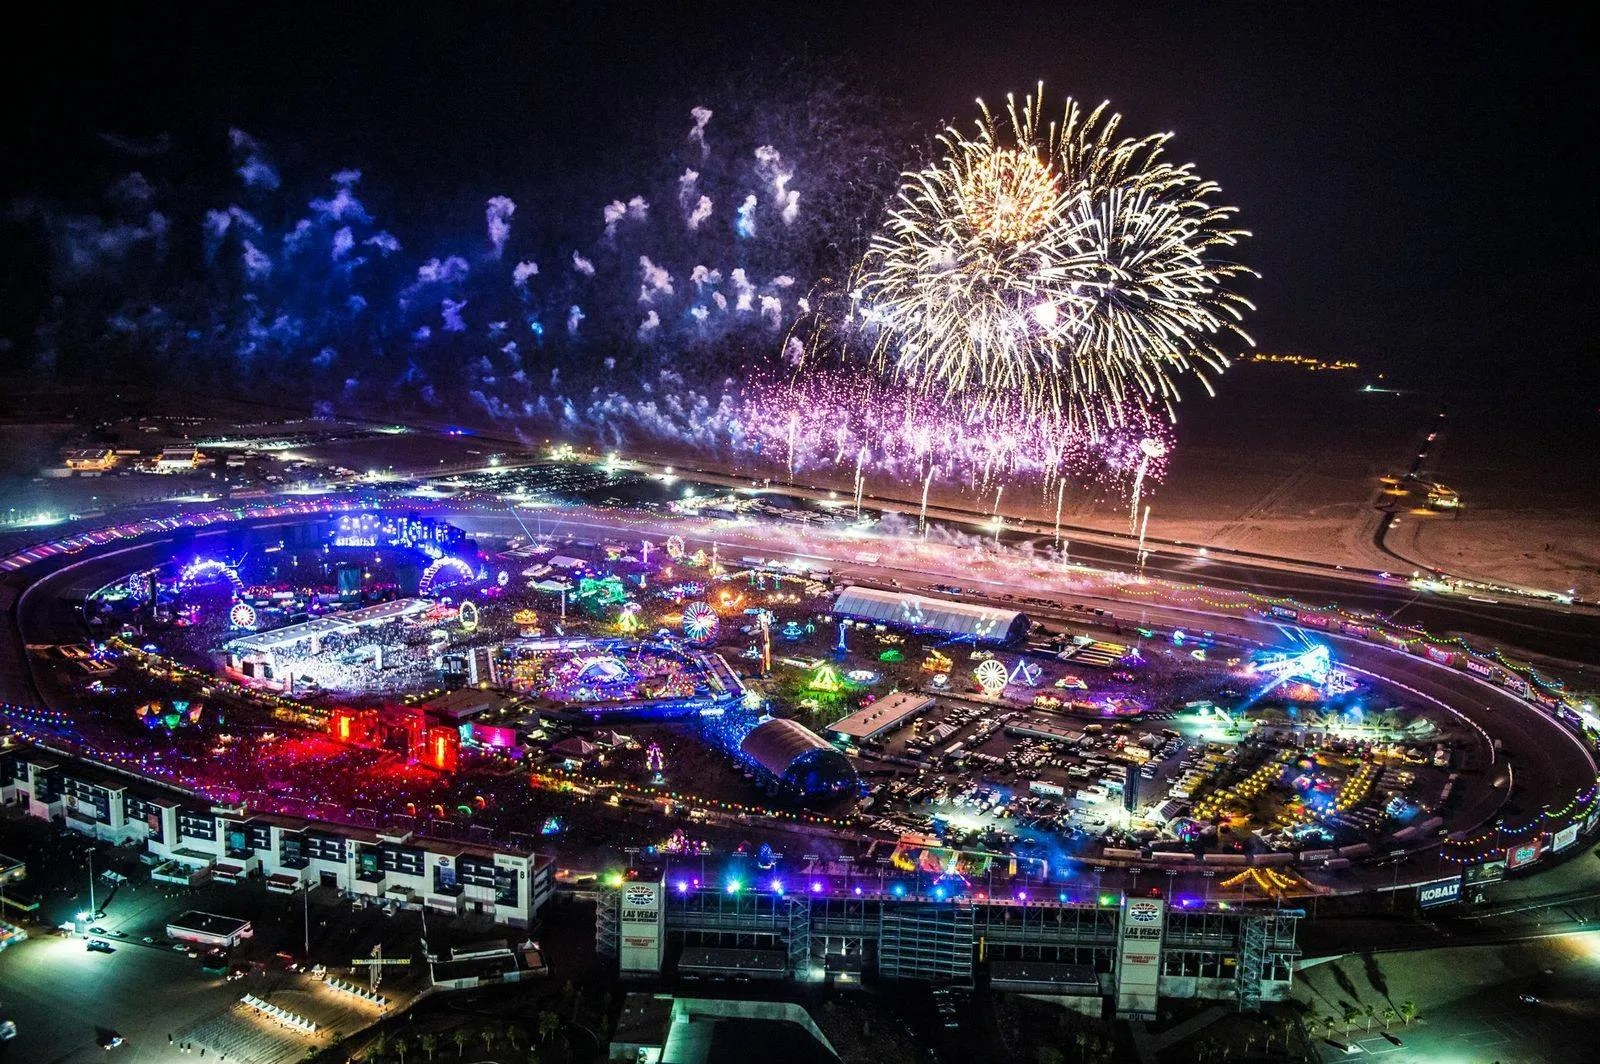 Insomniac Events is bringing Electric Daisy Carnival to